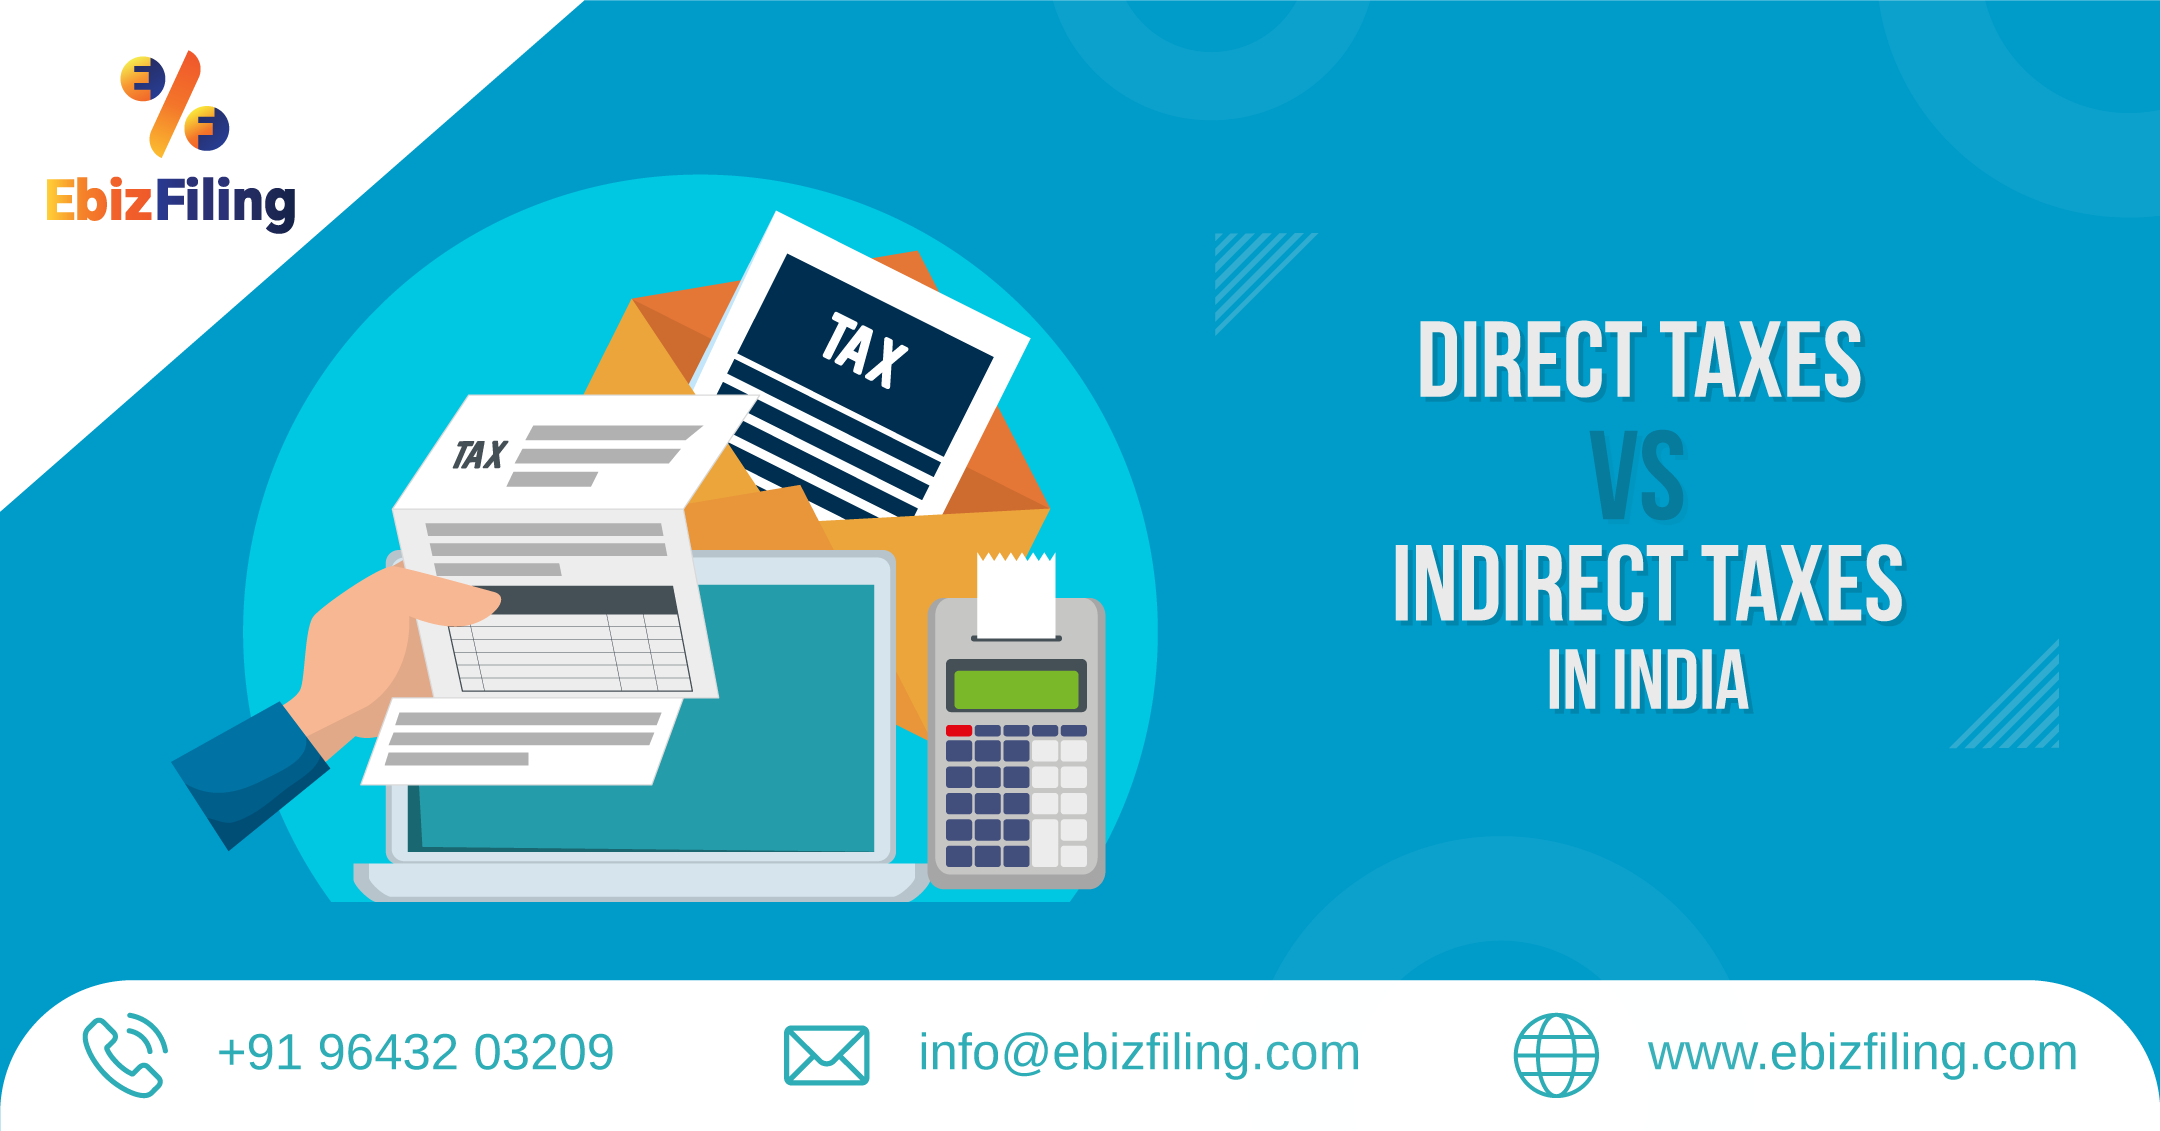 Direct taxes vs indirect taxes in India, Ebizfiling